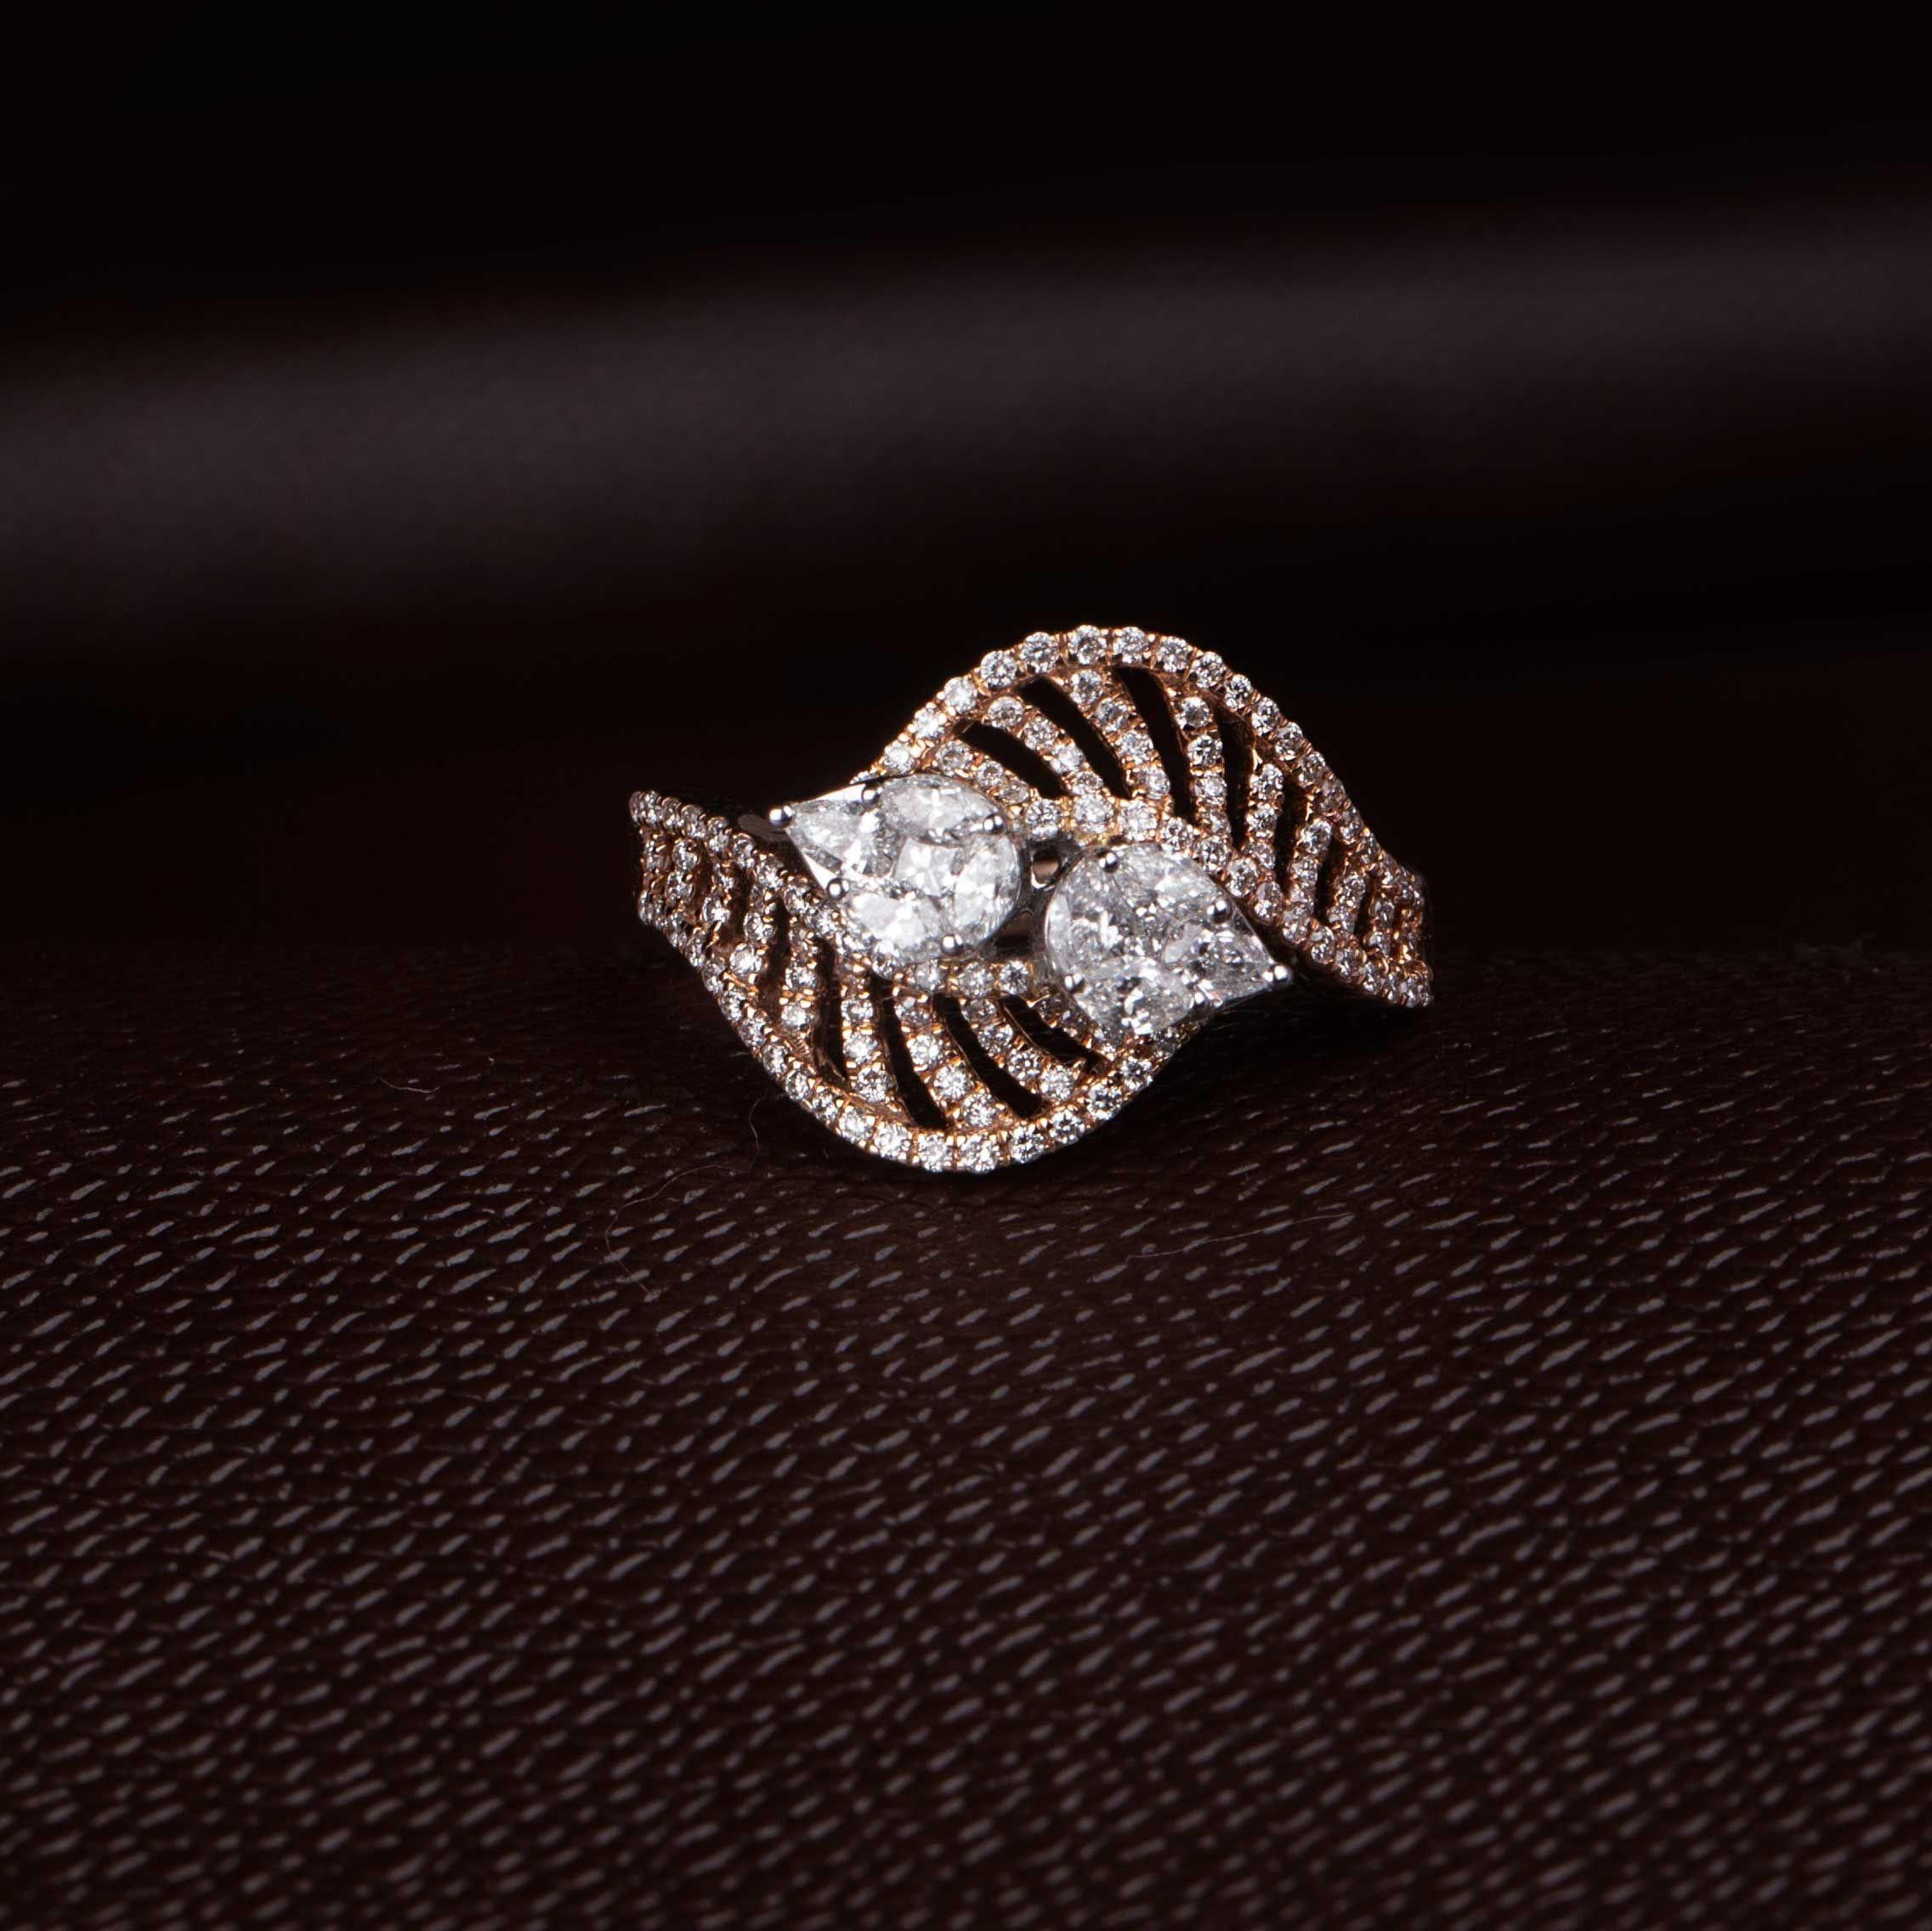 16+ Jewelry stores that buy diamond rings ideas in 2021